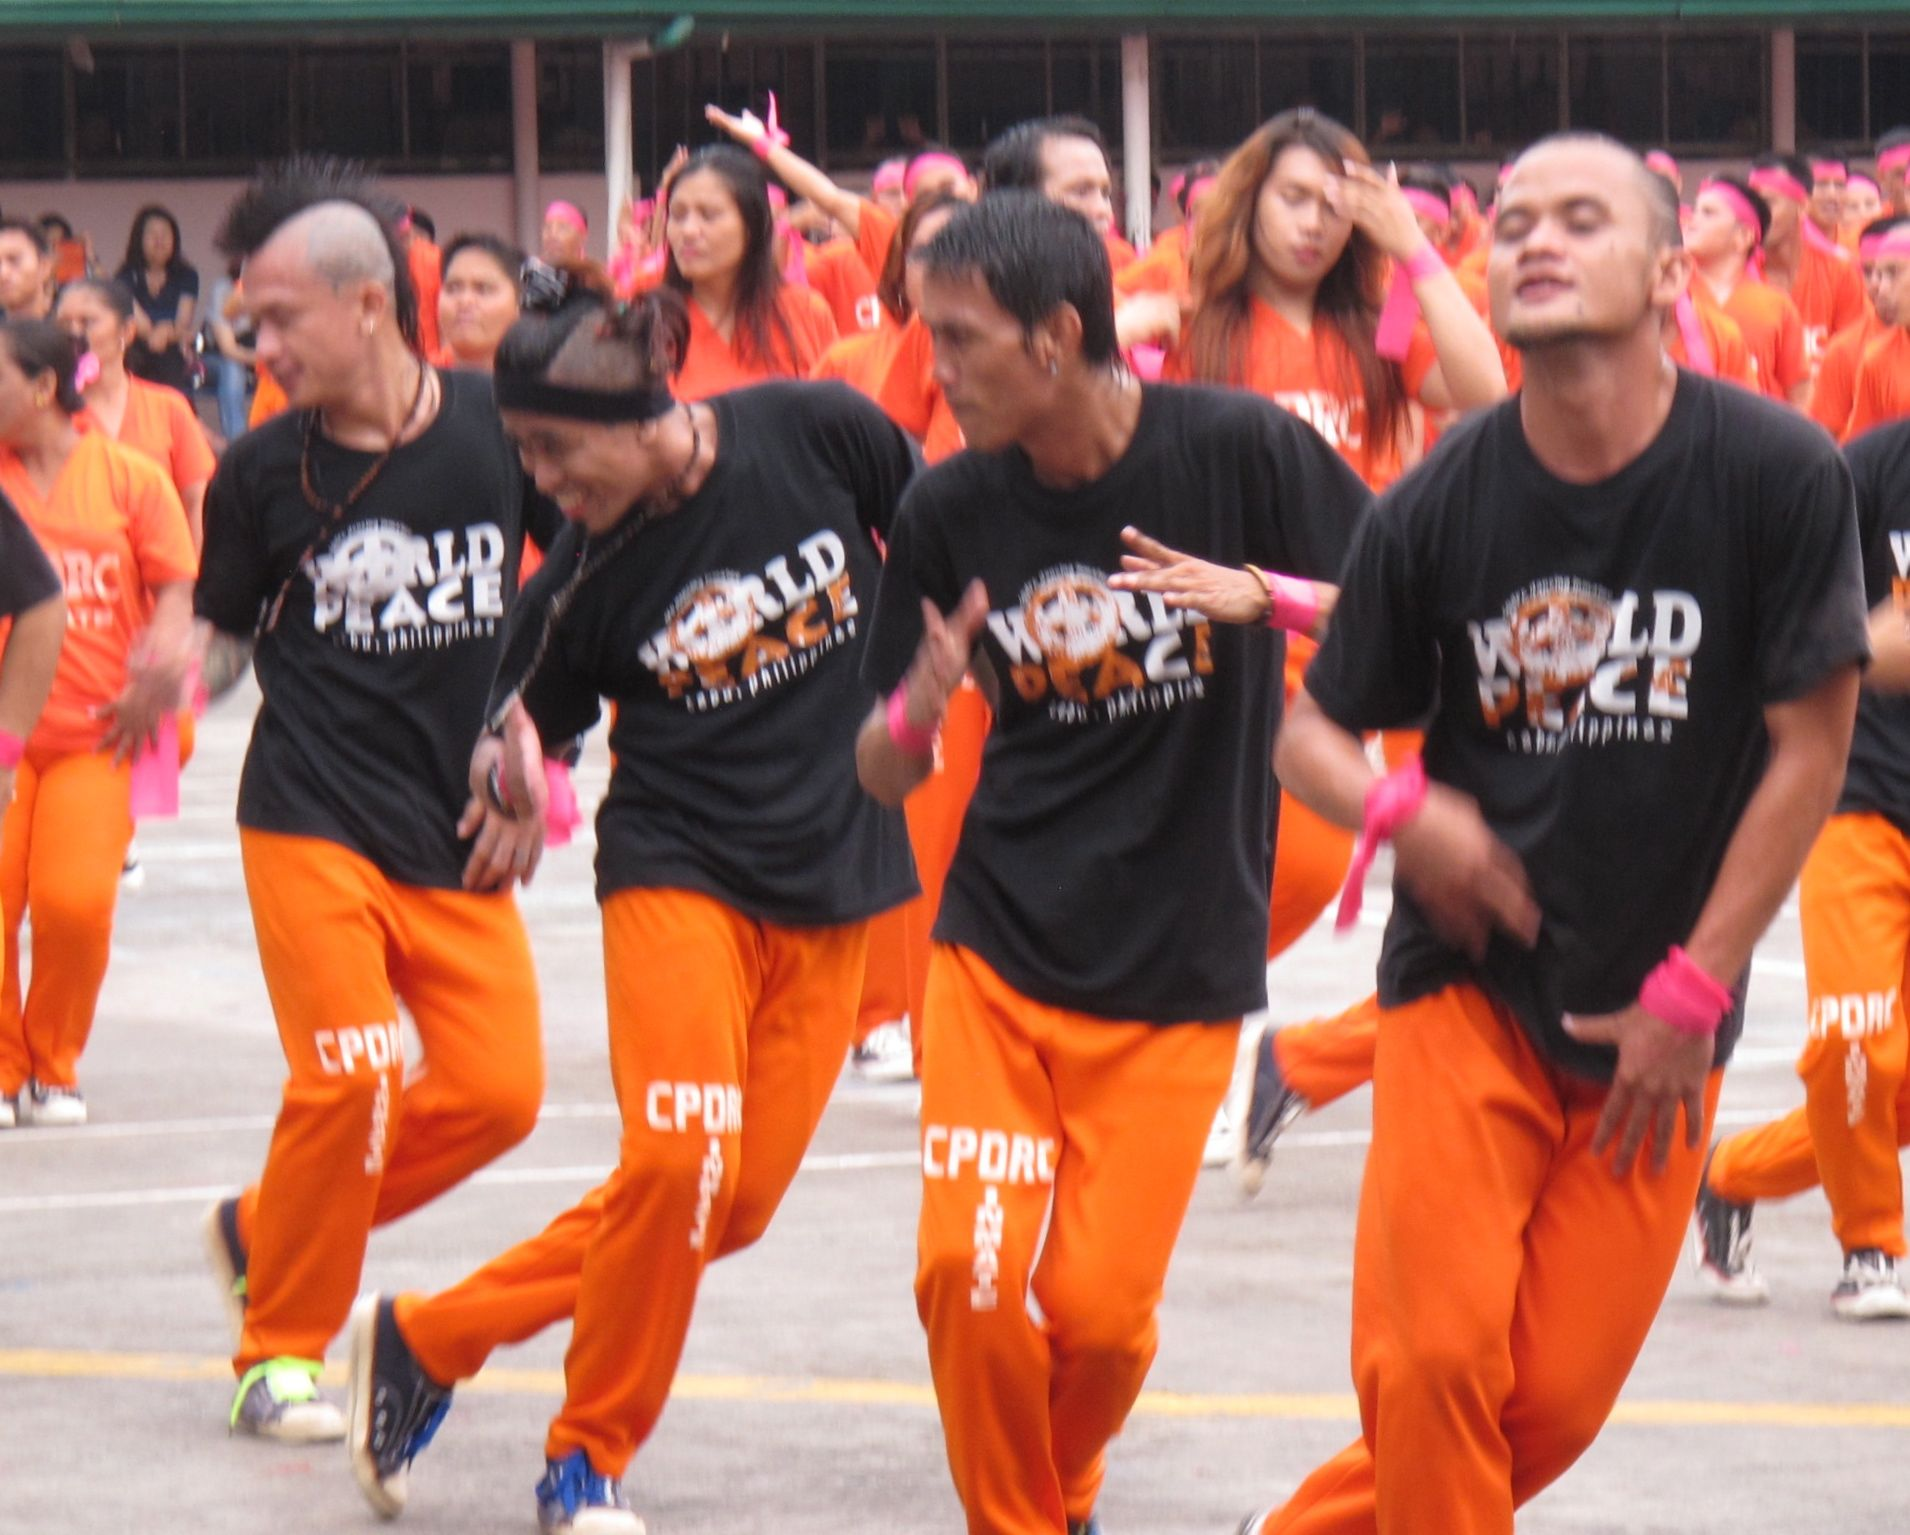 Cebu Detention Center inmates shakin' their thang during their monthly performance in the prison yard.